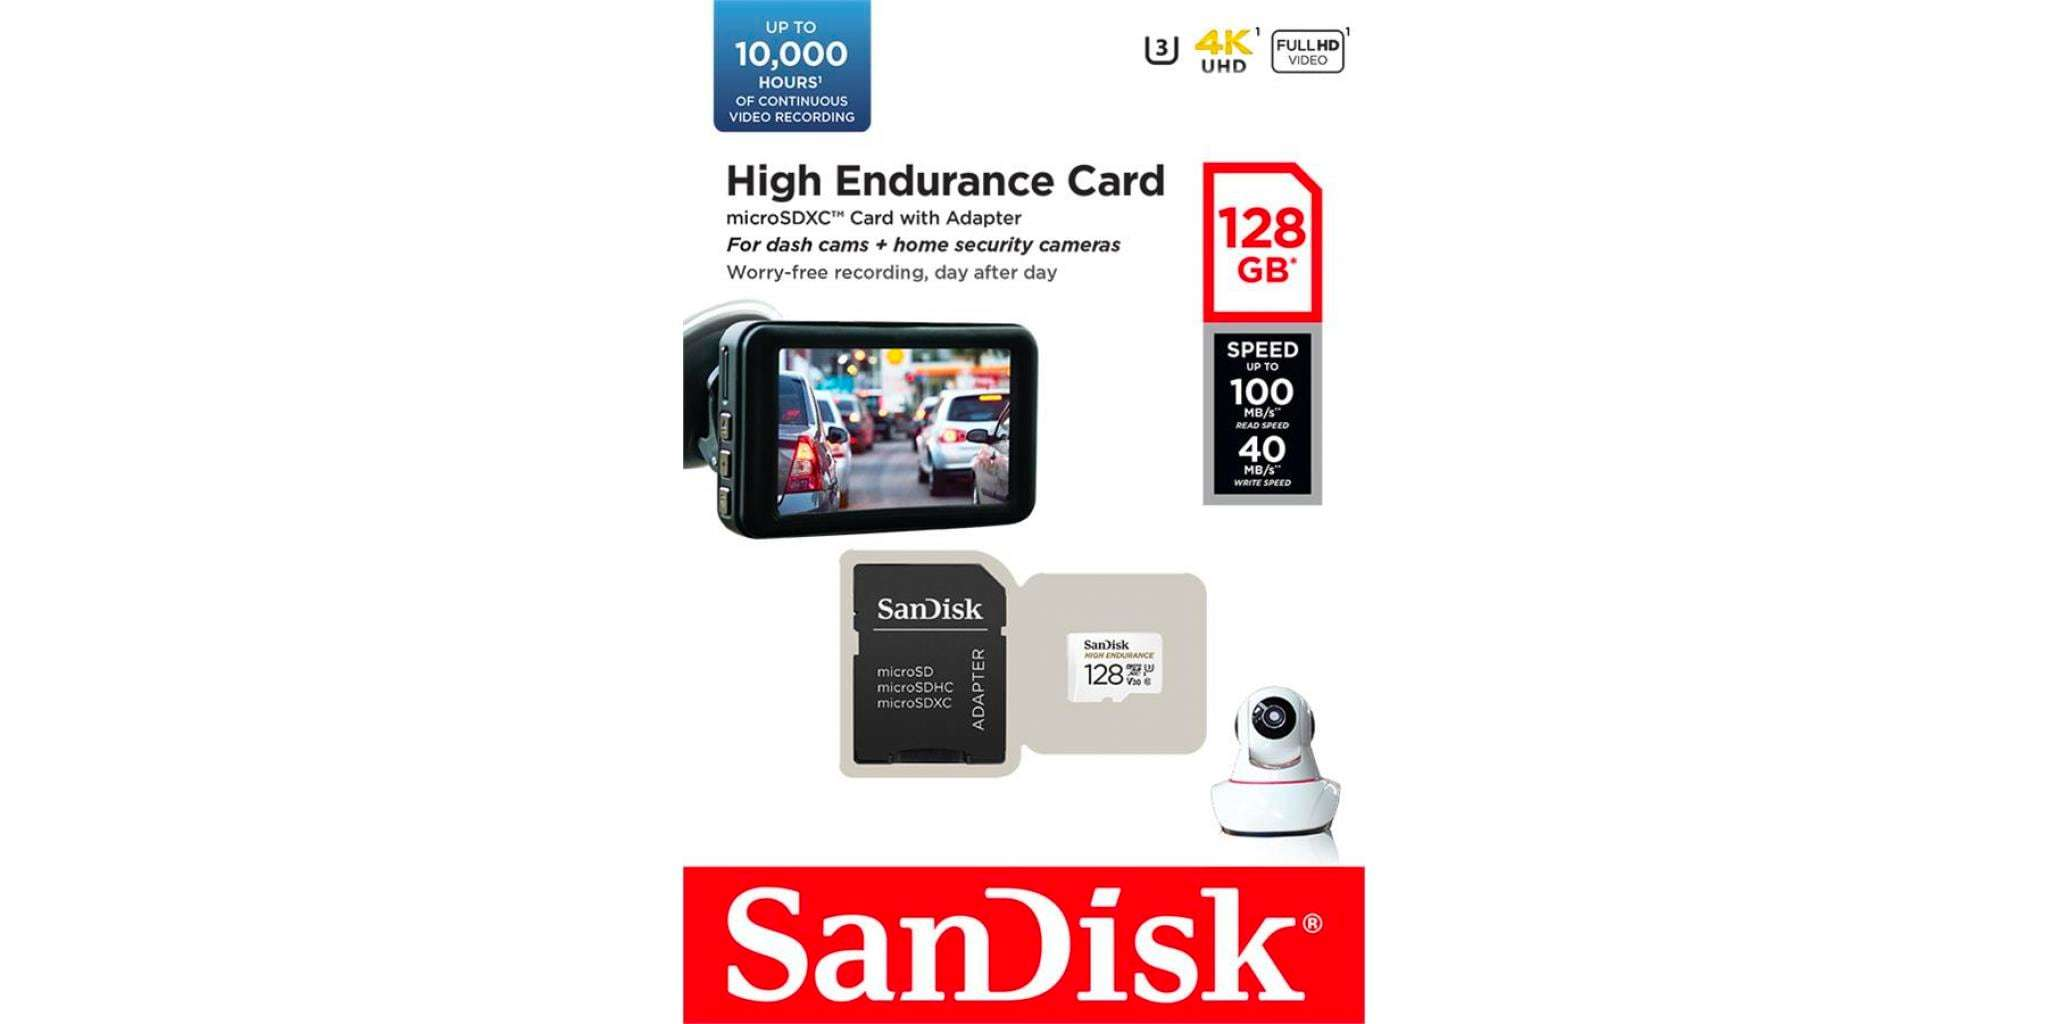 Флеш карта microSD 128GB SanDisk microSDXC Class 10 UHS-I U3 V30 High Endurance Video Monitoring Card упаковка